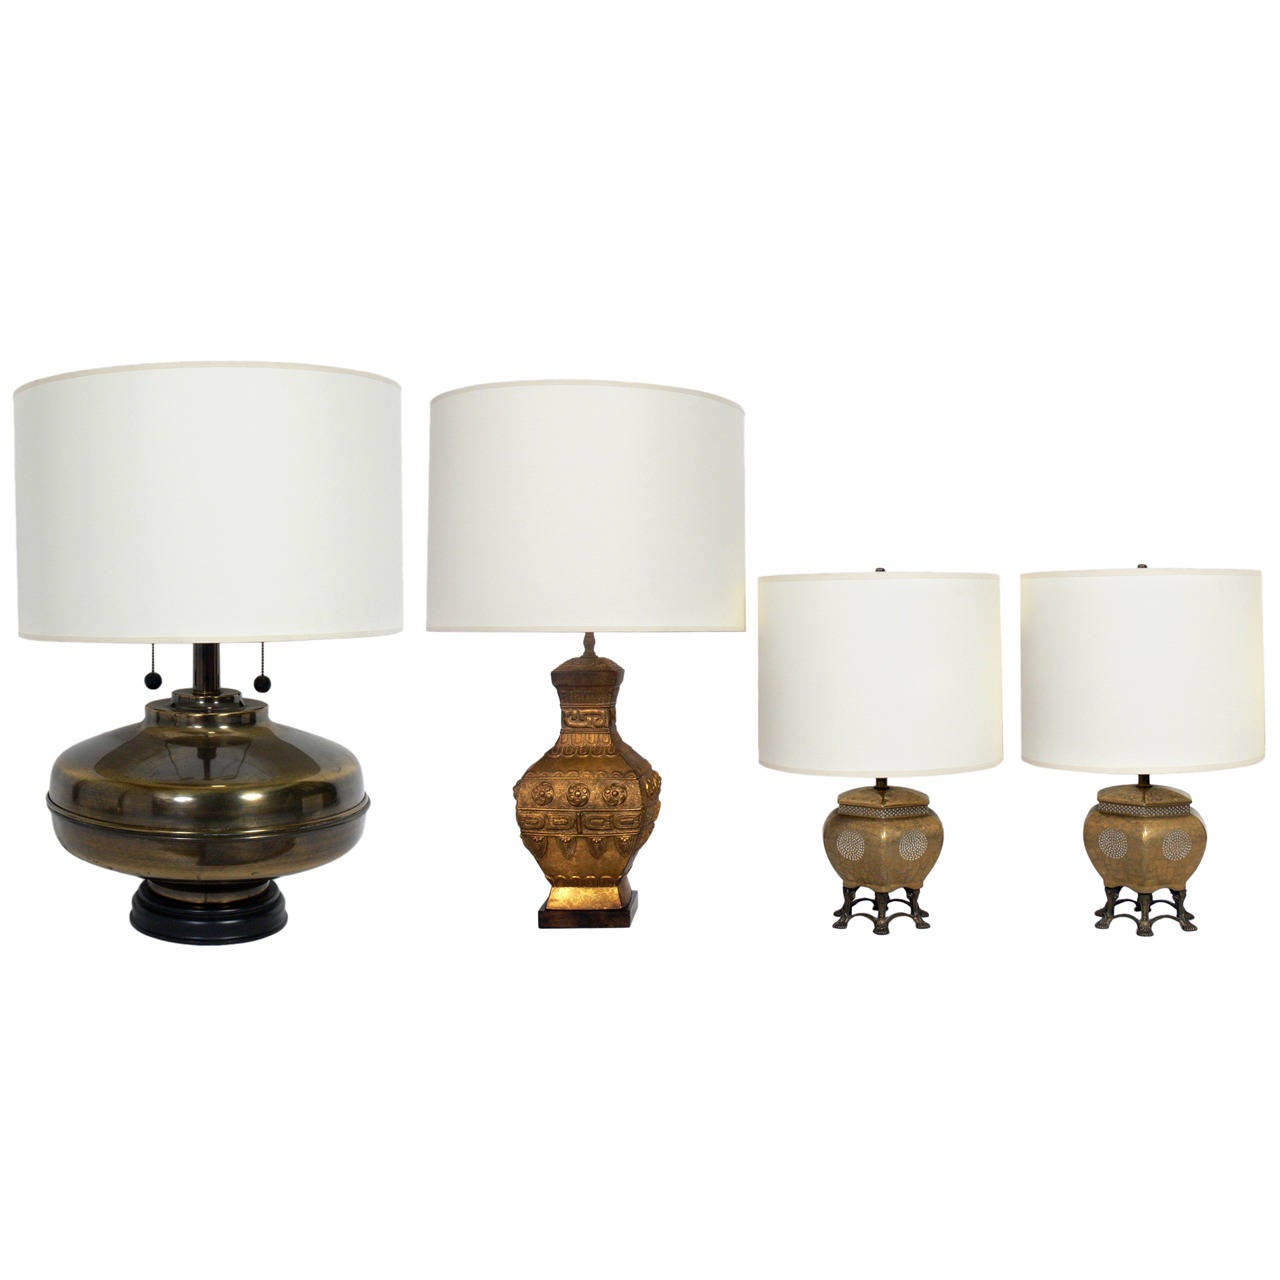 Selection of Asian Style Vintage Lamps